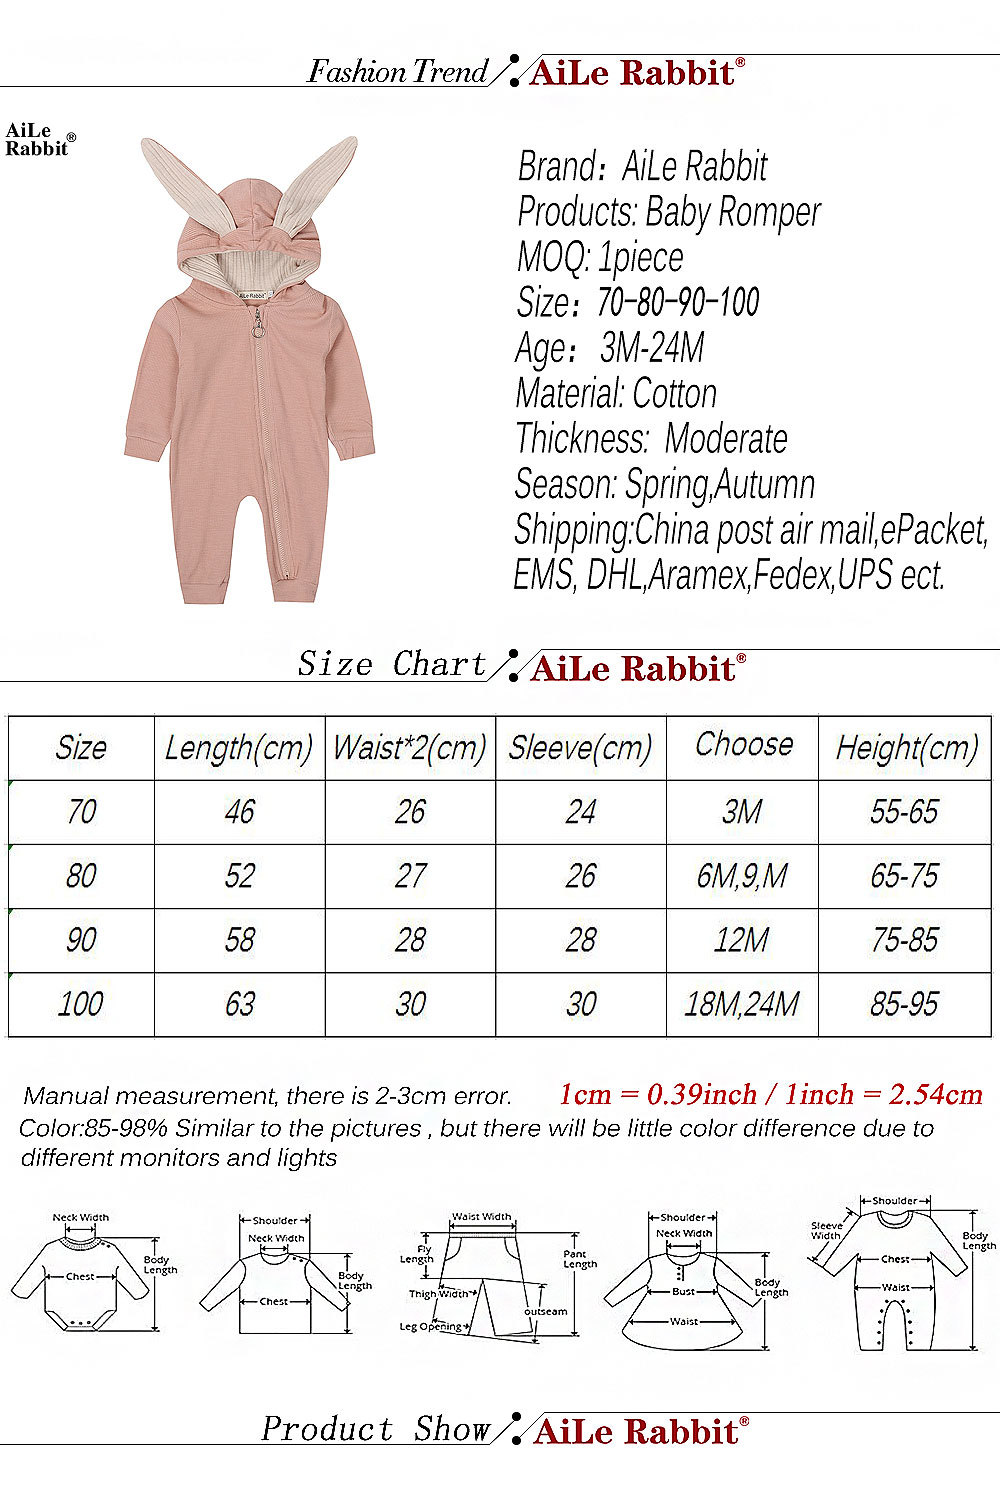 HTB1IEJhaUz1gK0jSZLeq6z9kVXaM New Spring Autumn Baby Rompers Cute Cartoon Rabbit Infant Girl Boy Jumpers Kids Baby Outfits Clothes